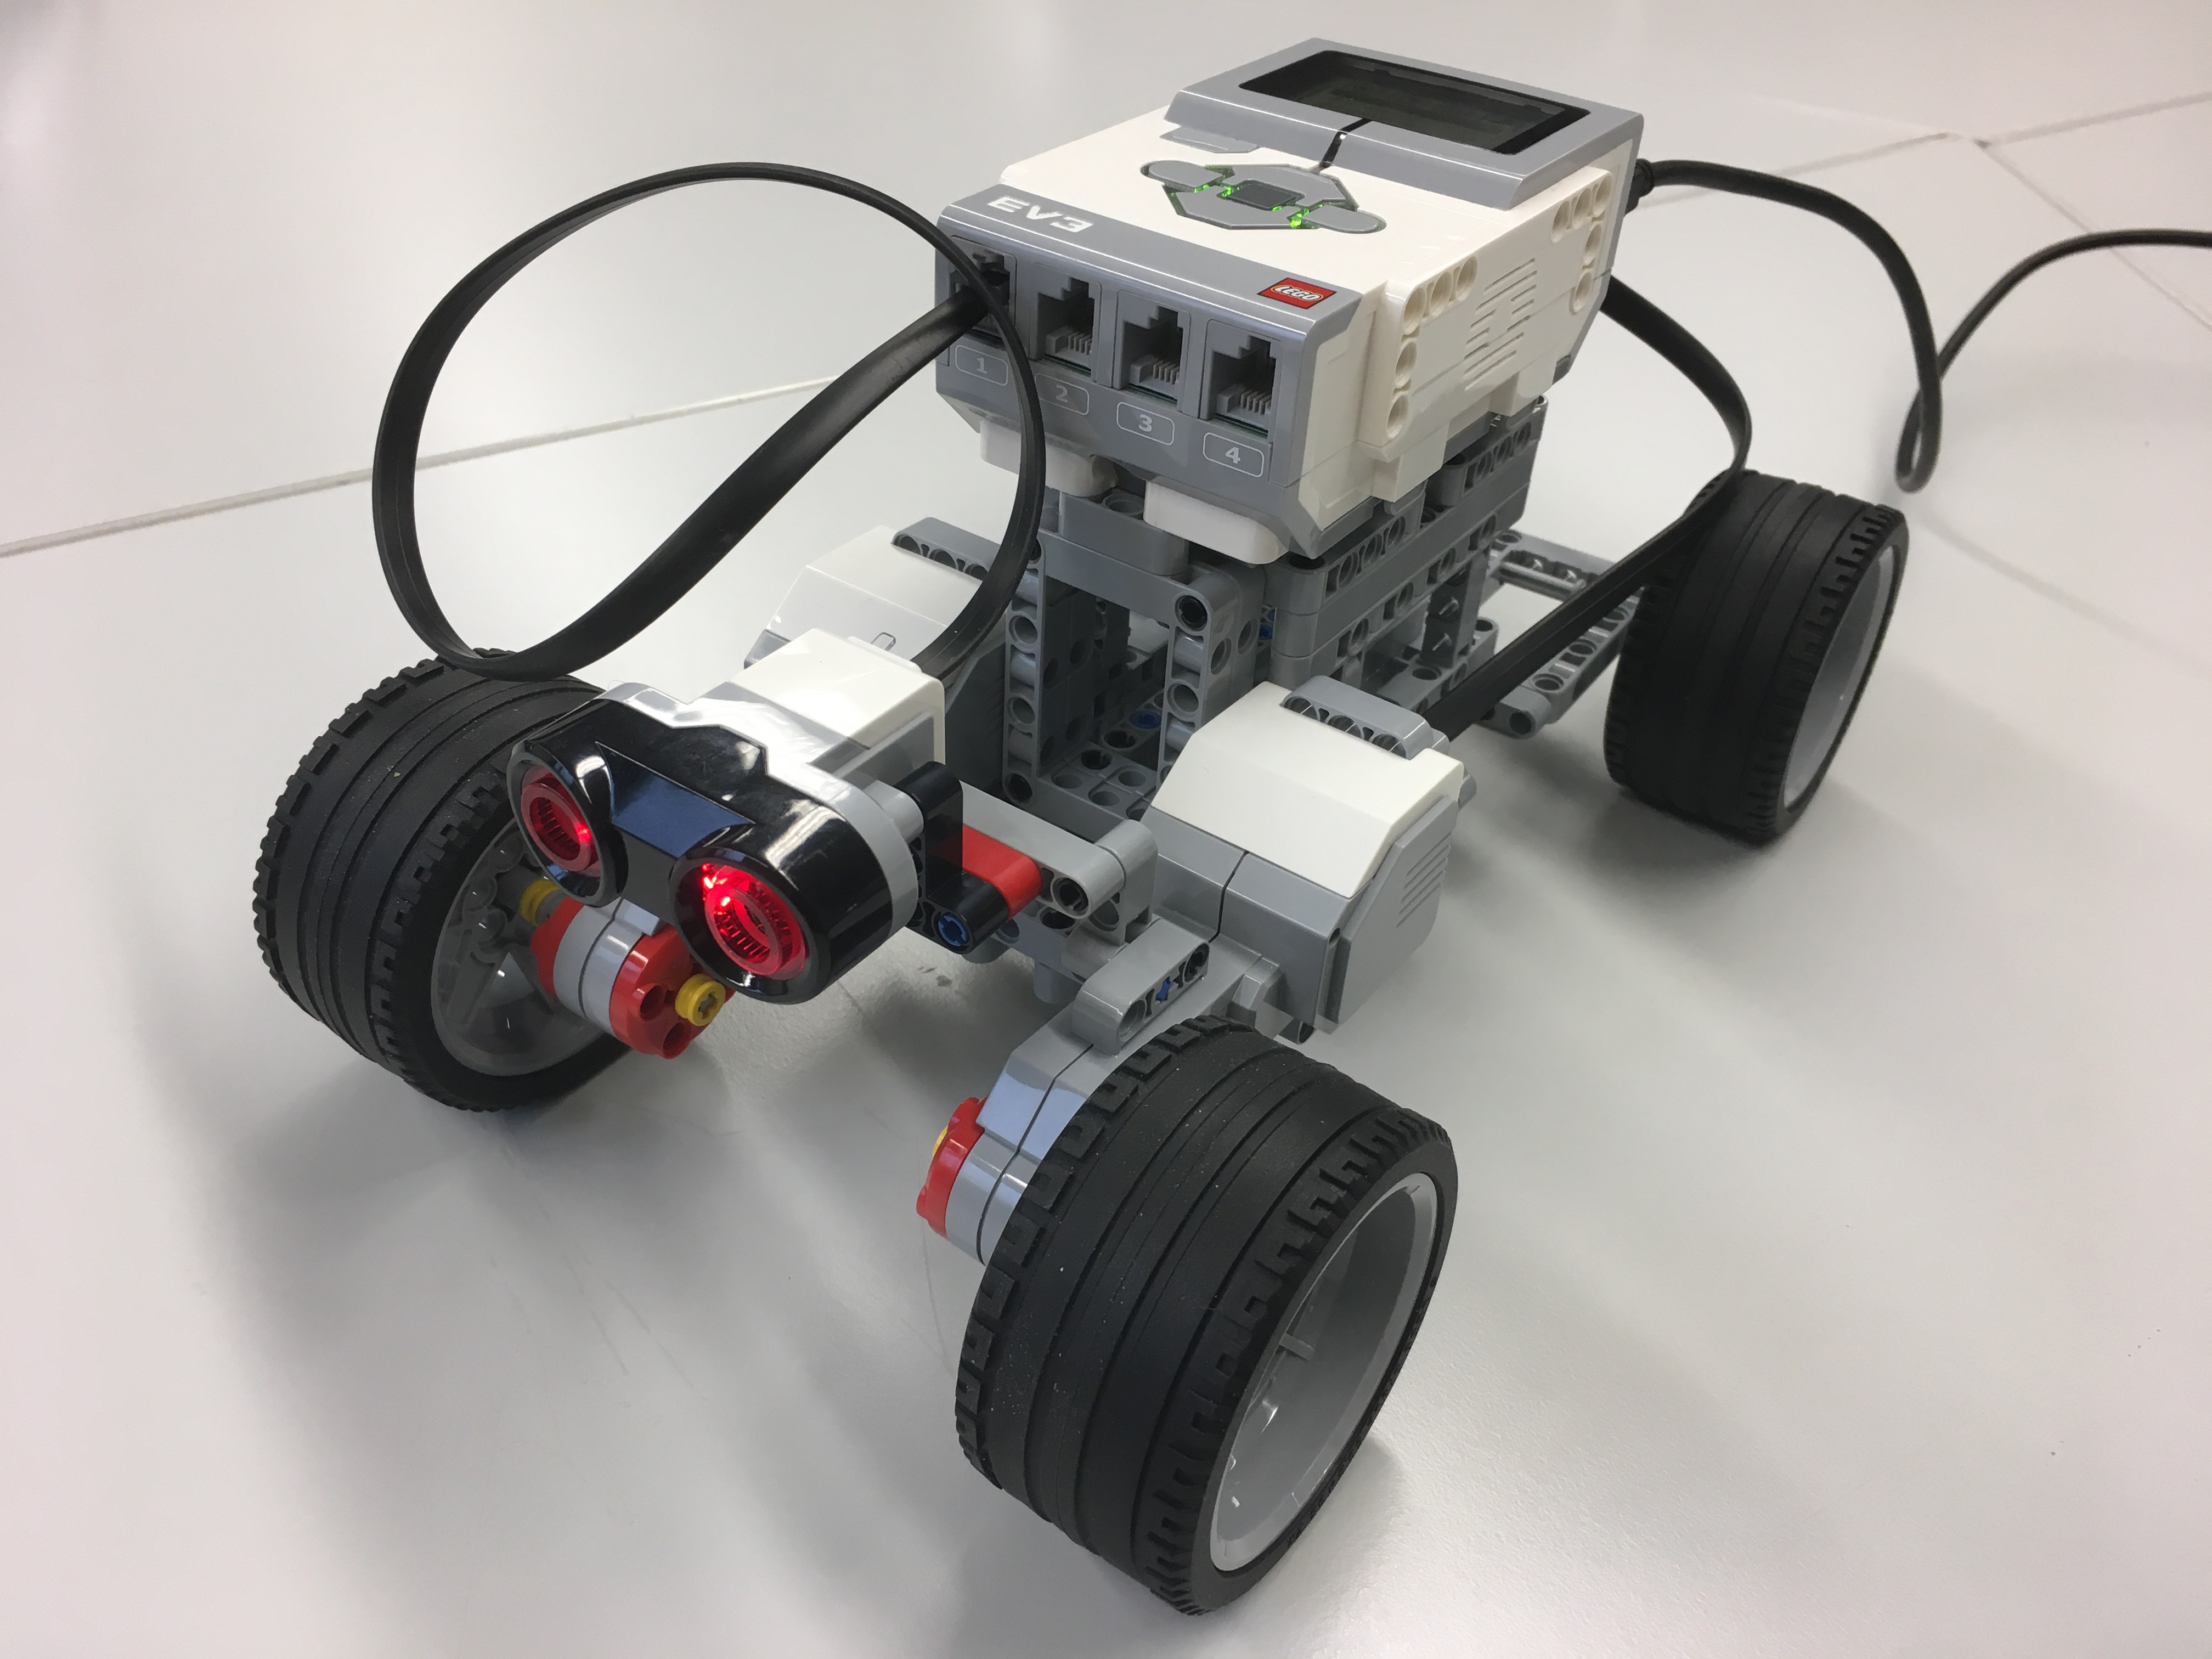 Controlling Motors And Read Sensors Of Lego Mindstorms With Matlab